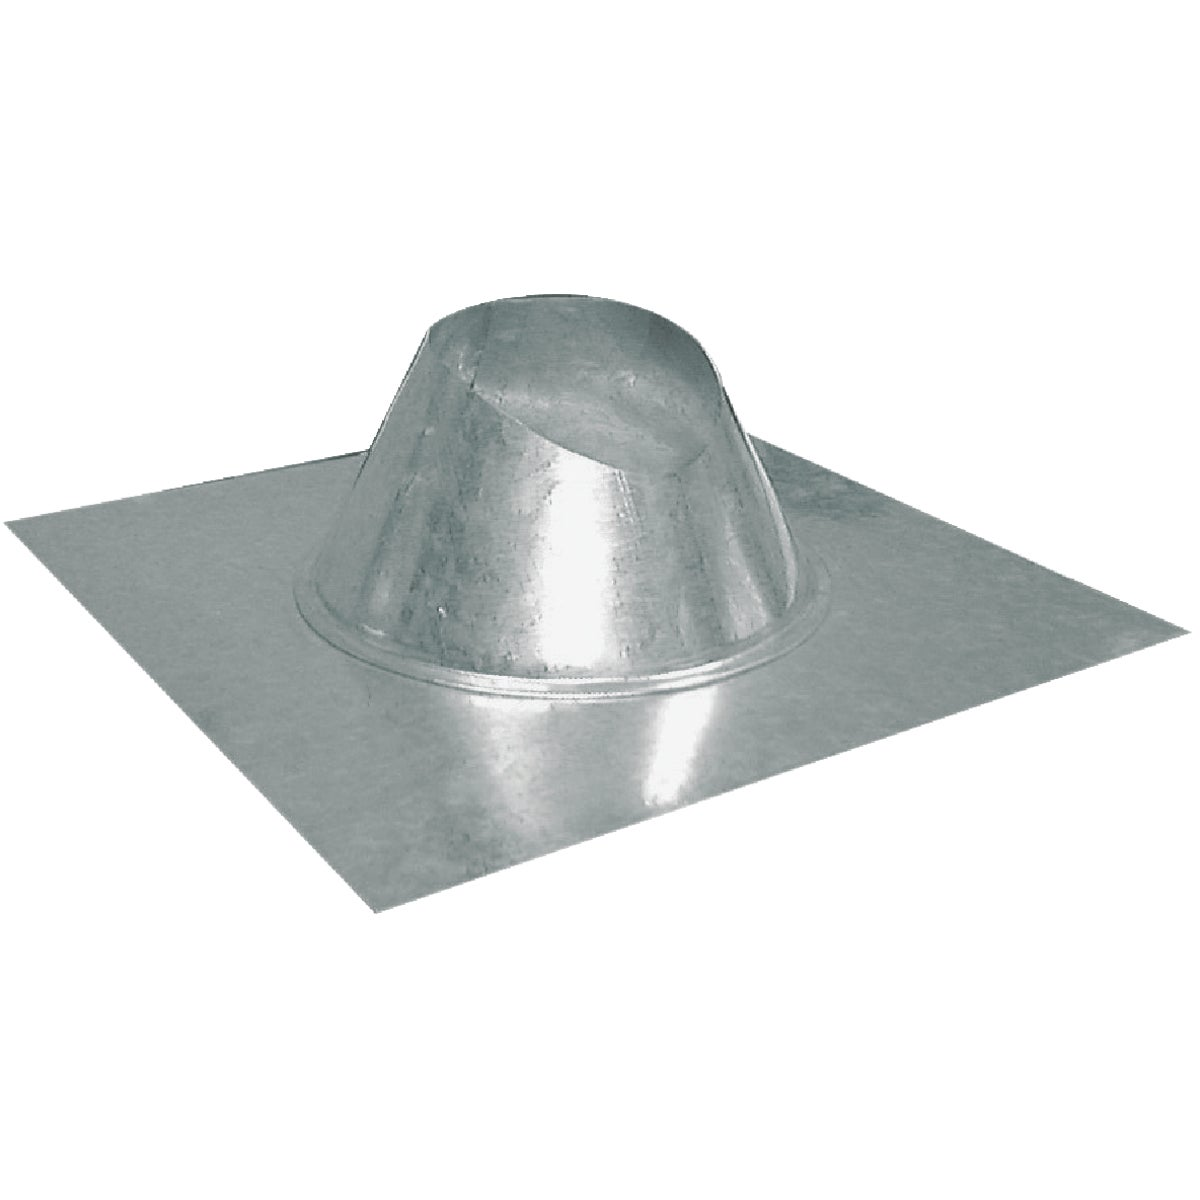 "5"" GALV ROOF FLASHING - GV1384 by Imperial Mfg Group"